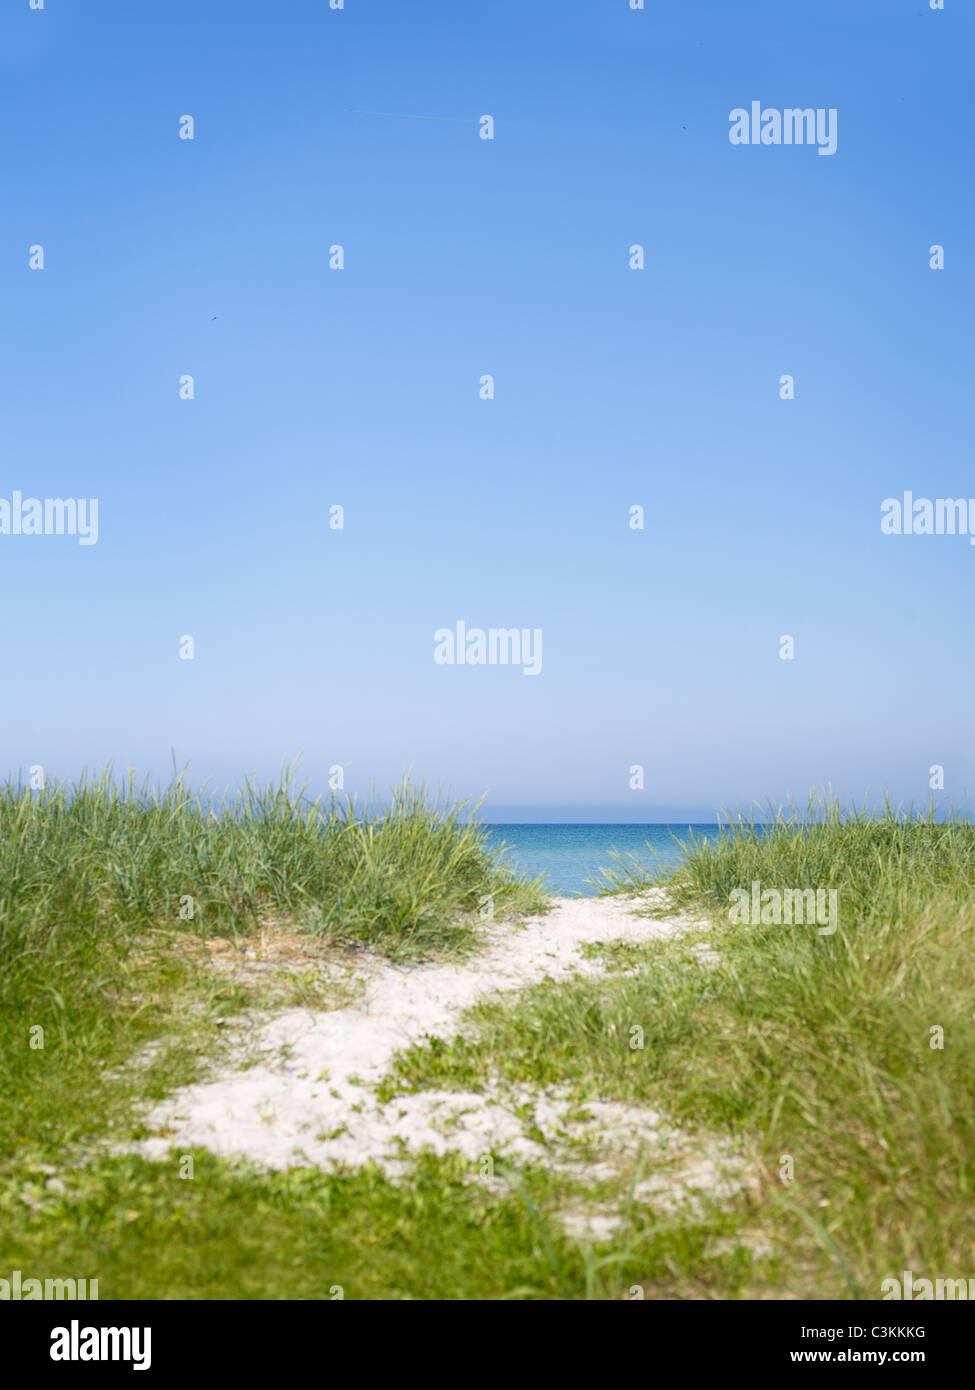 Landscape with dunes and sea - Stock Image